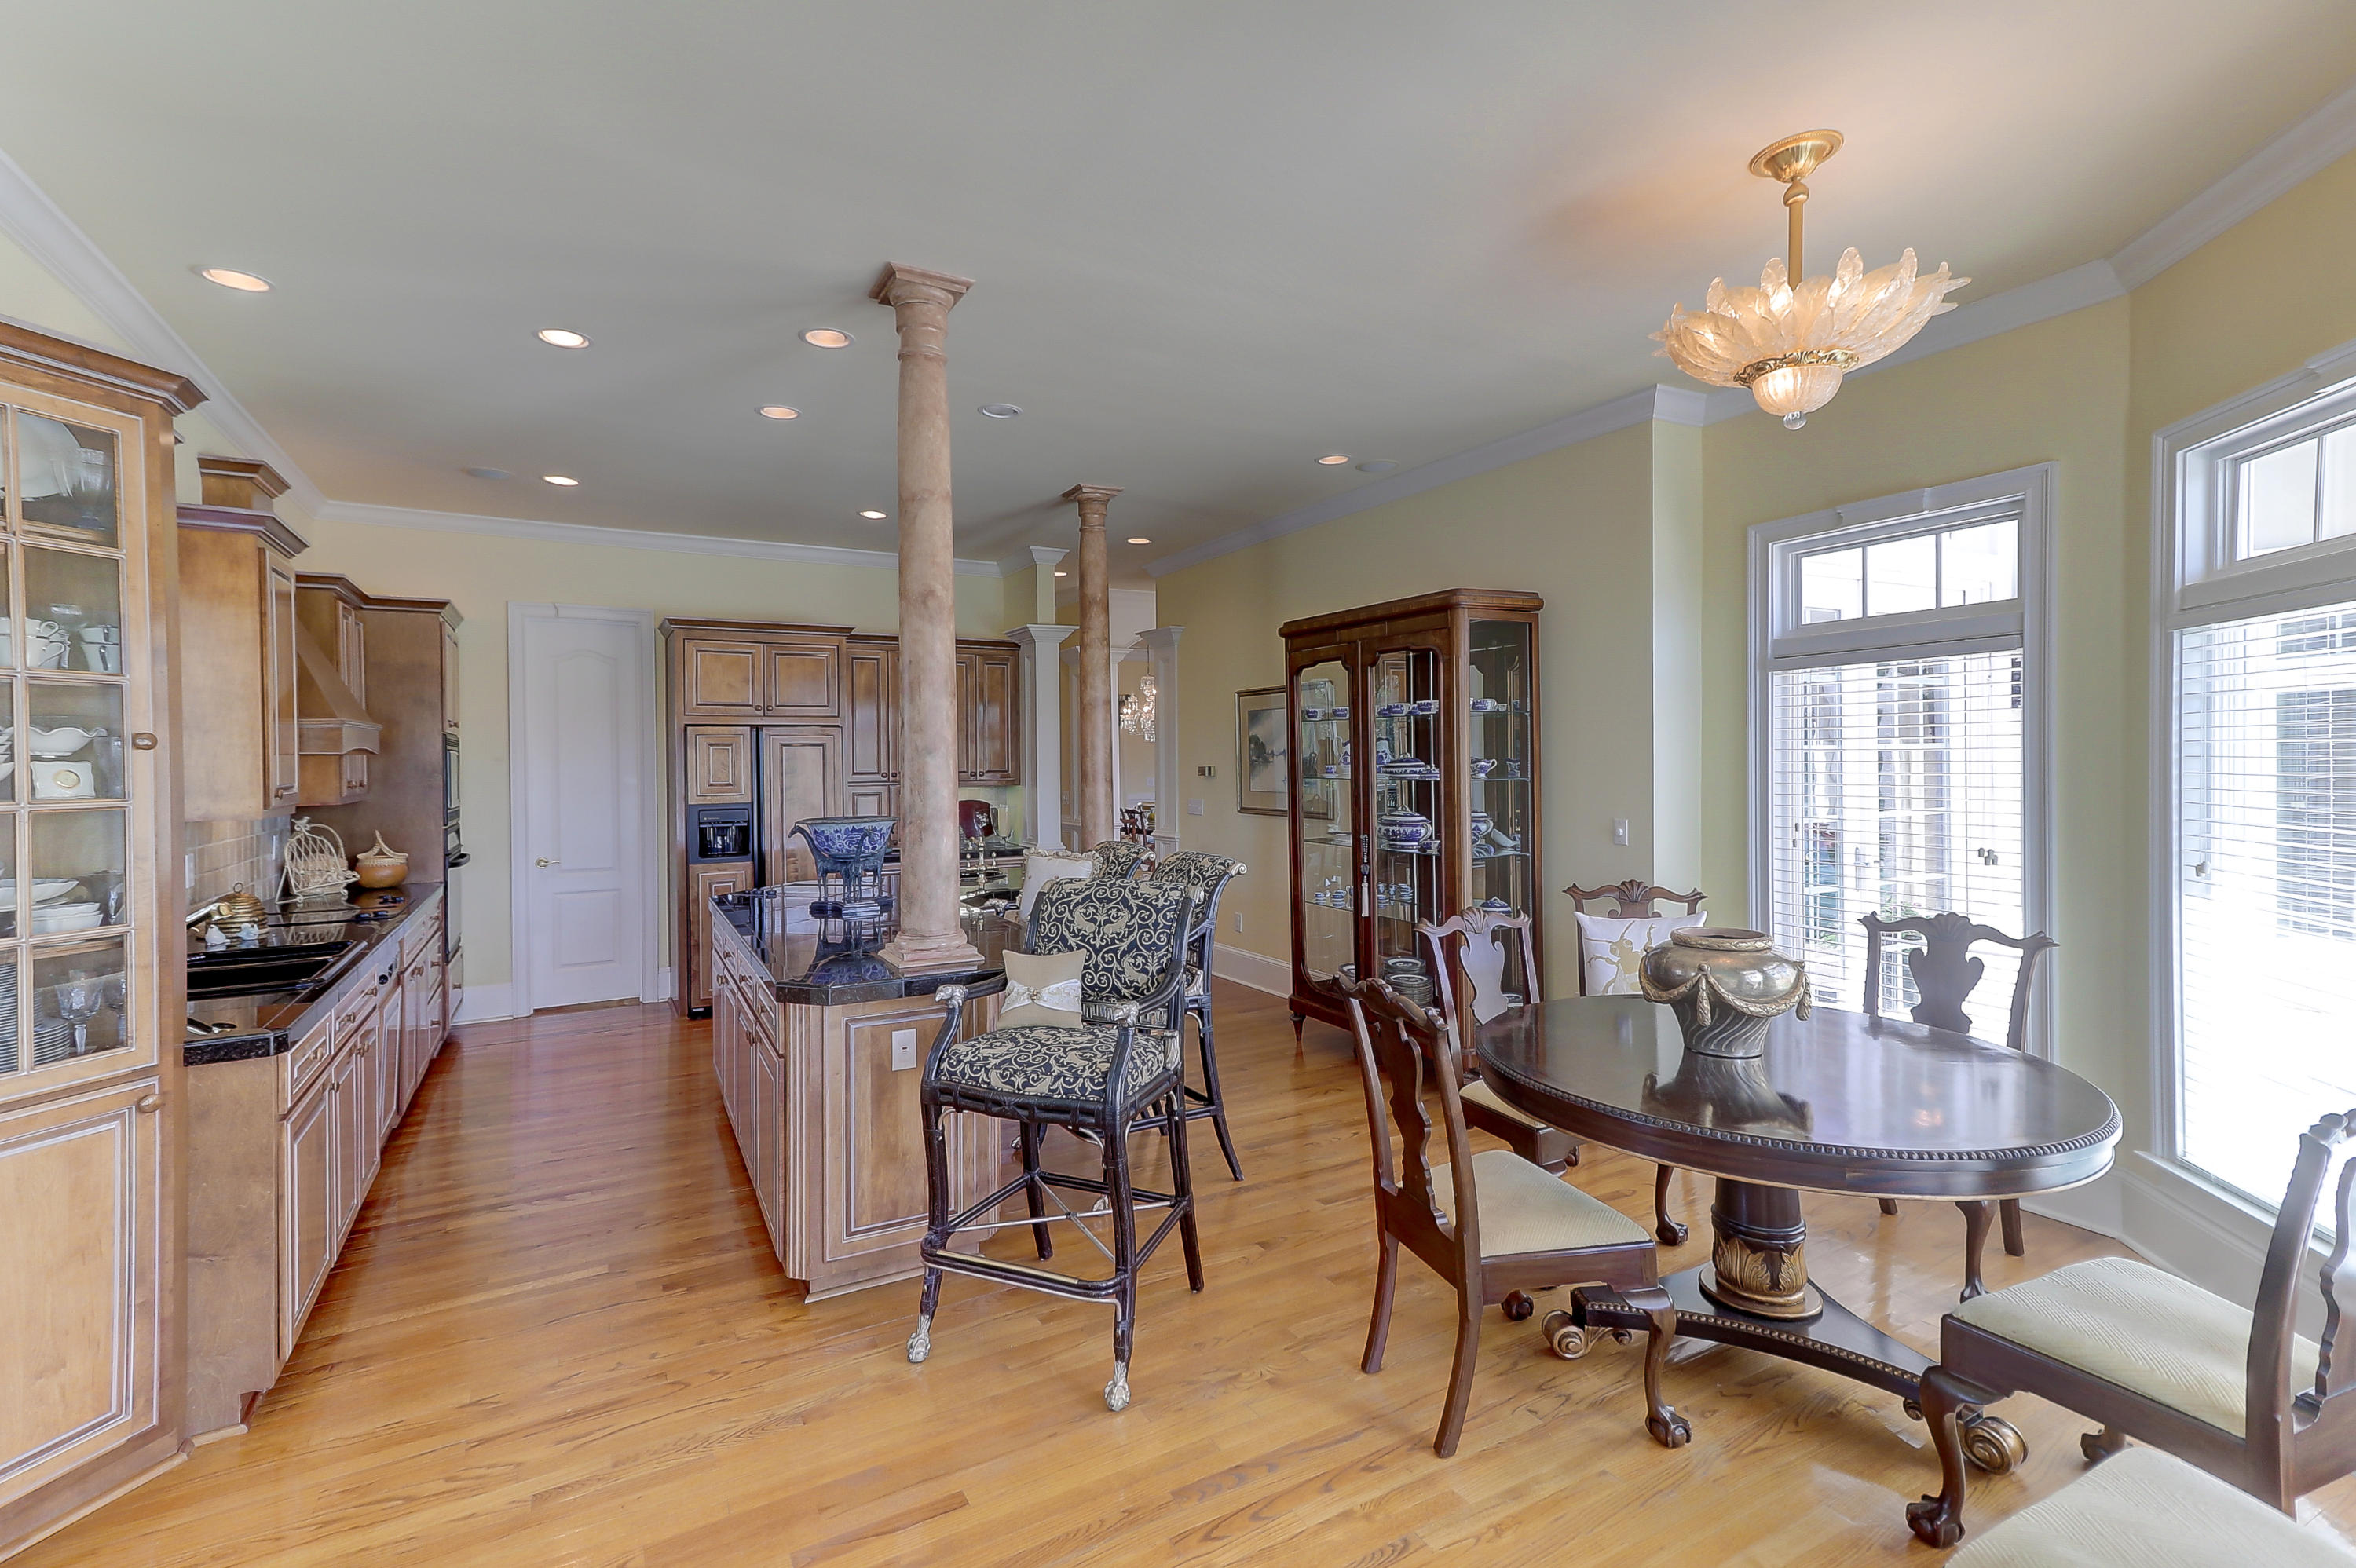 Dunes West Homes For Sale - 2019 Shell Ring, Mount Pleasant, SC - 7